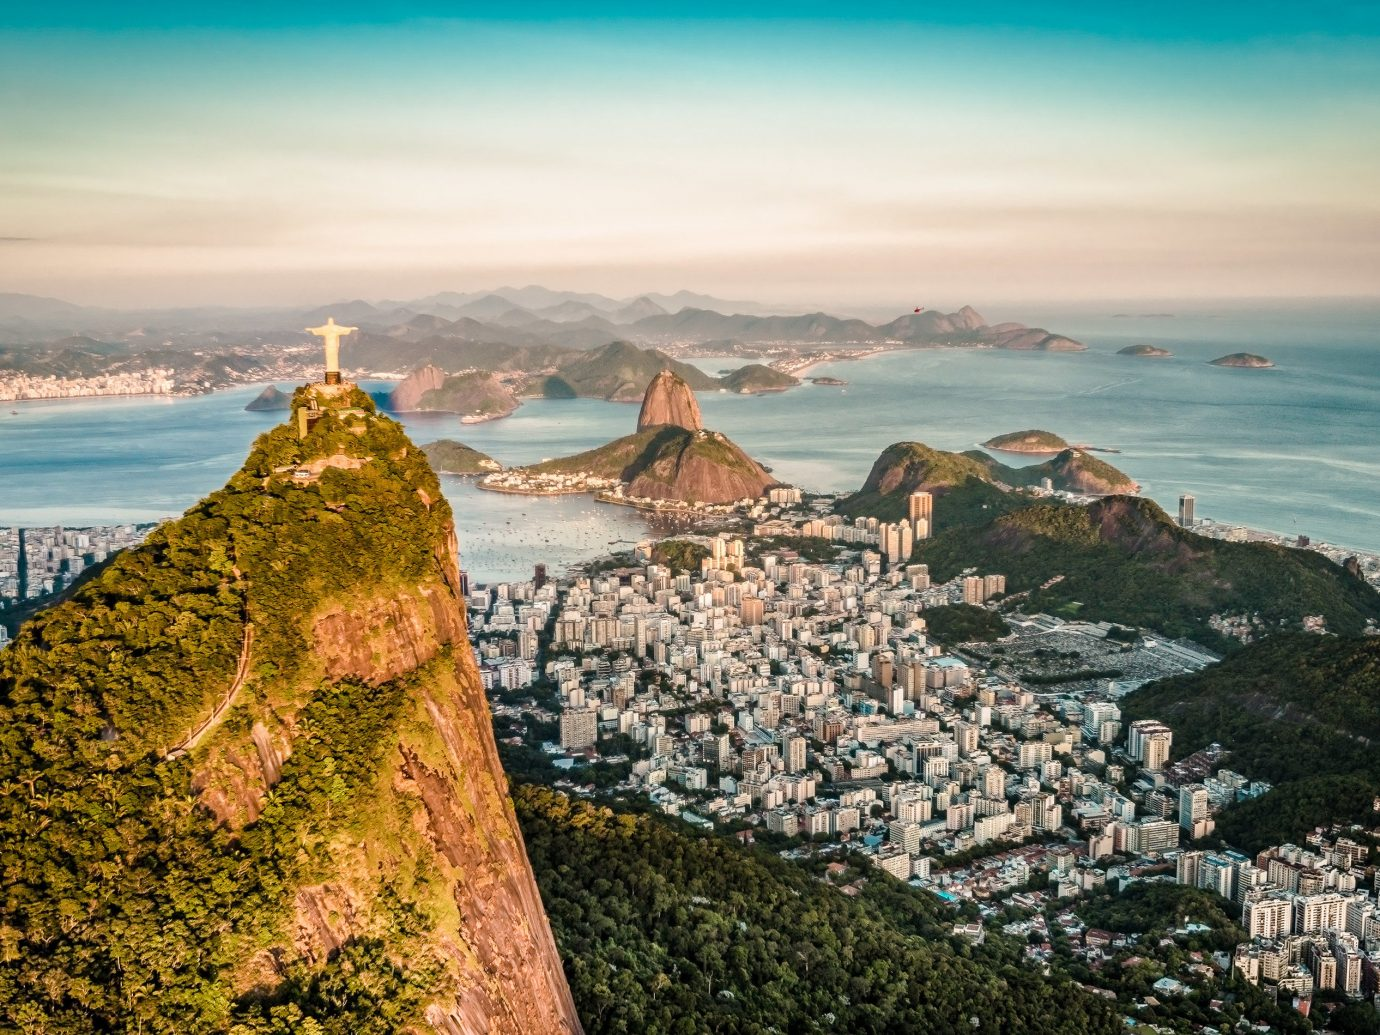 Beaches Brazil Travel Tips Trip Ideas sky water outdoor Sea rock landmark Nature City horizon Coast photography promontory rocky tourism morning Ocean mountain tree cloud terrain tourist attraction aerial photography hill cape cityscape travel skyline evening landscape panorama overlooking